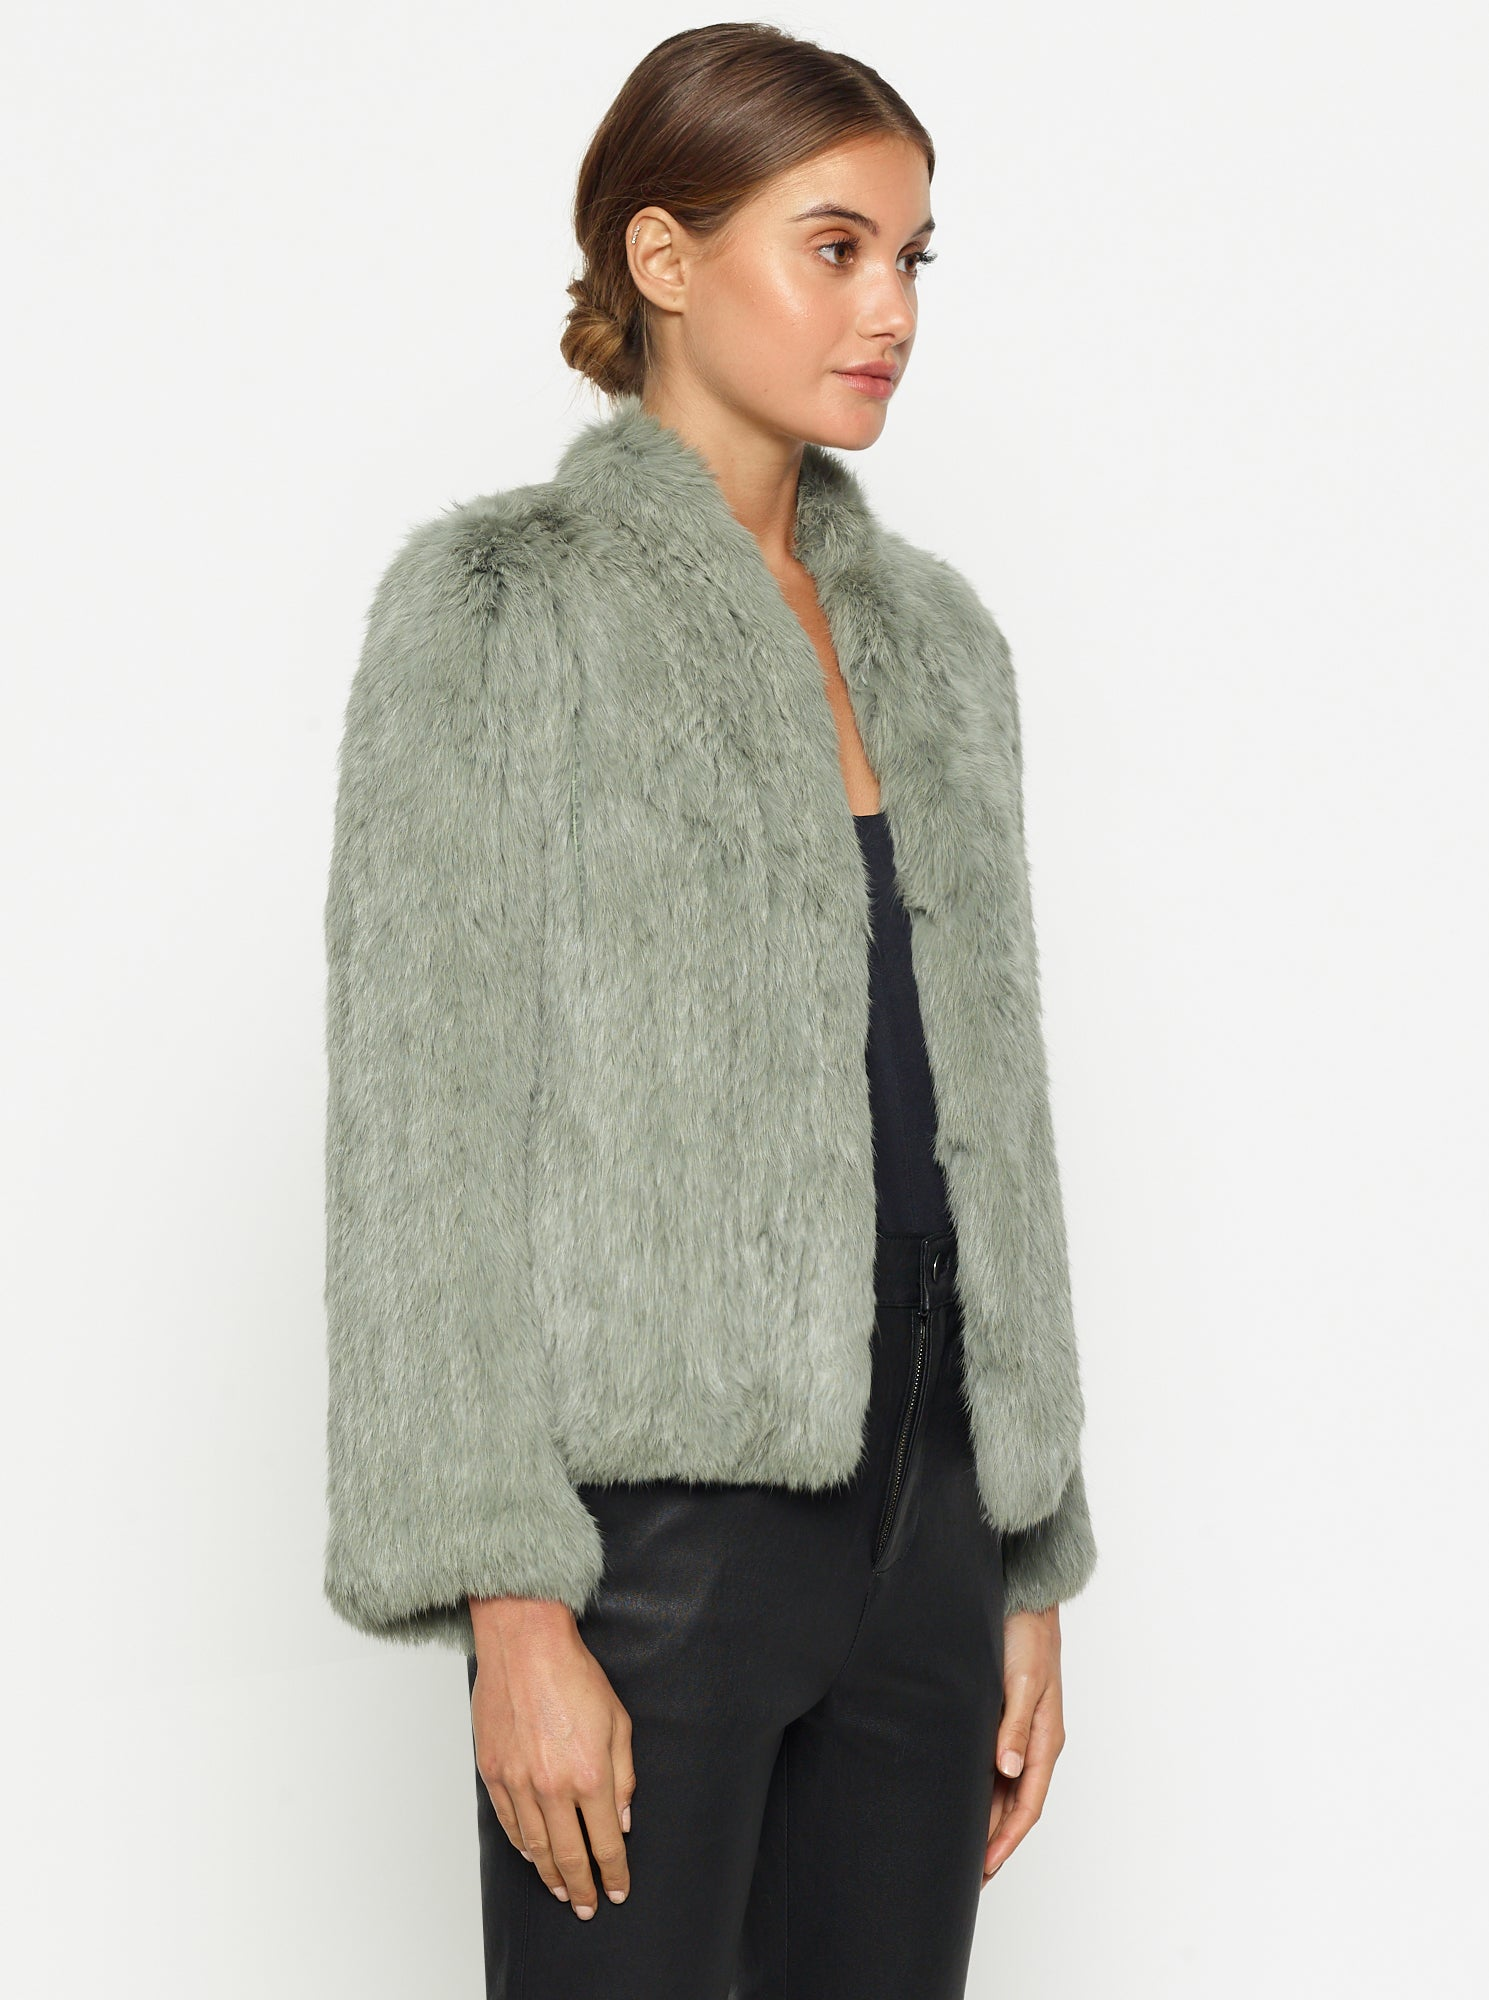 Lush Luxe Fur Jacket - Sage Green